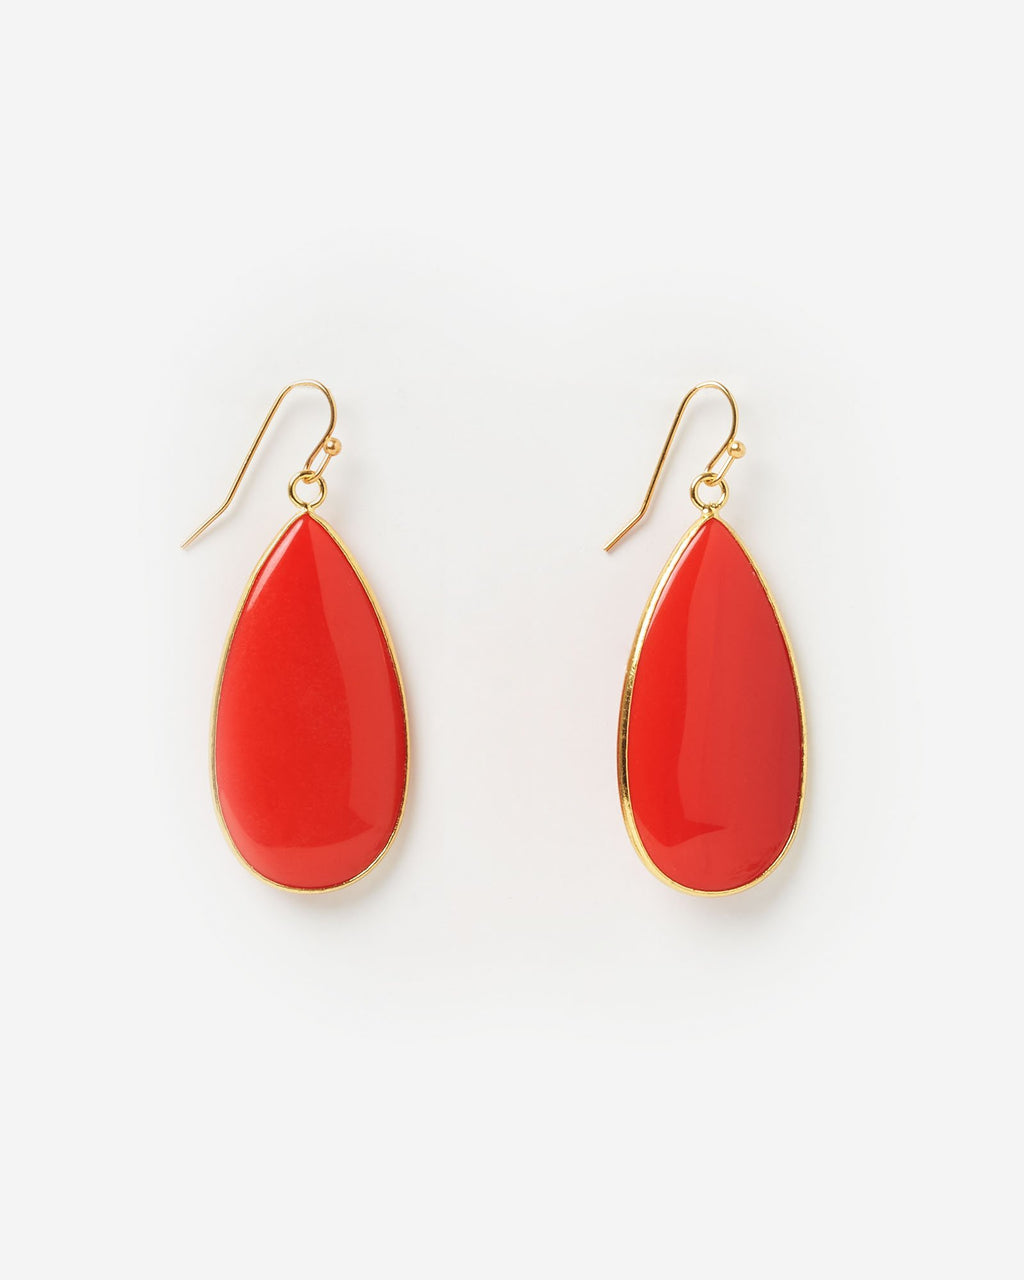 Miz Casa & Co Sea Petal Earrings Red Gold